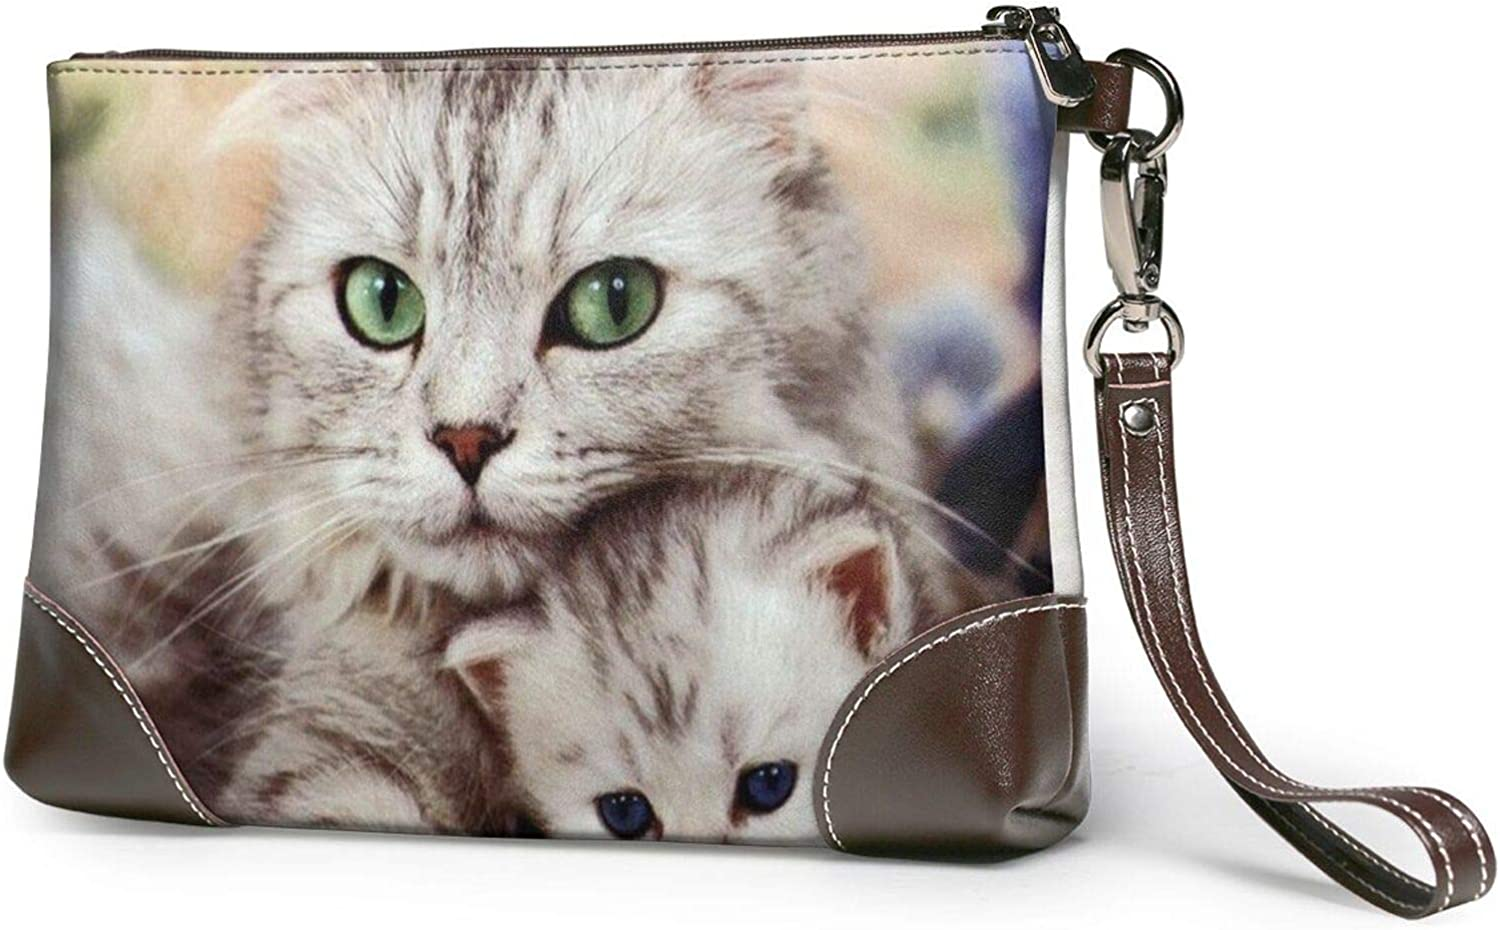 Cats Mom And Baby Department Dedication store Clutch P Purses Wallet Wristlet Leather